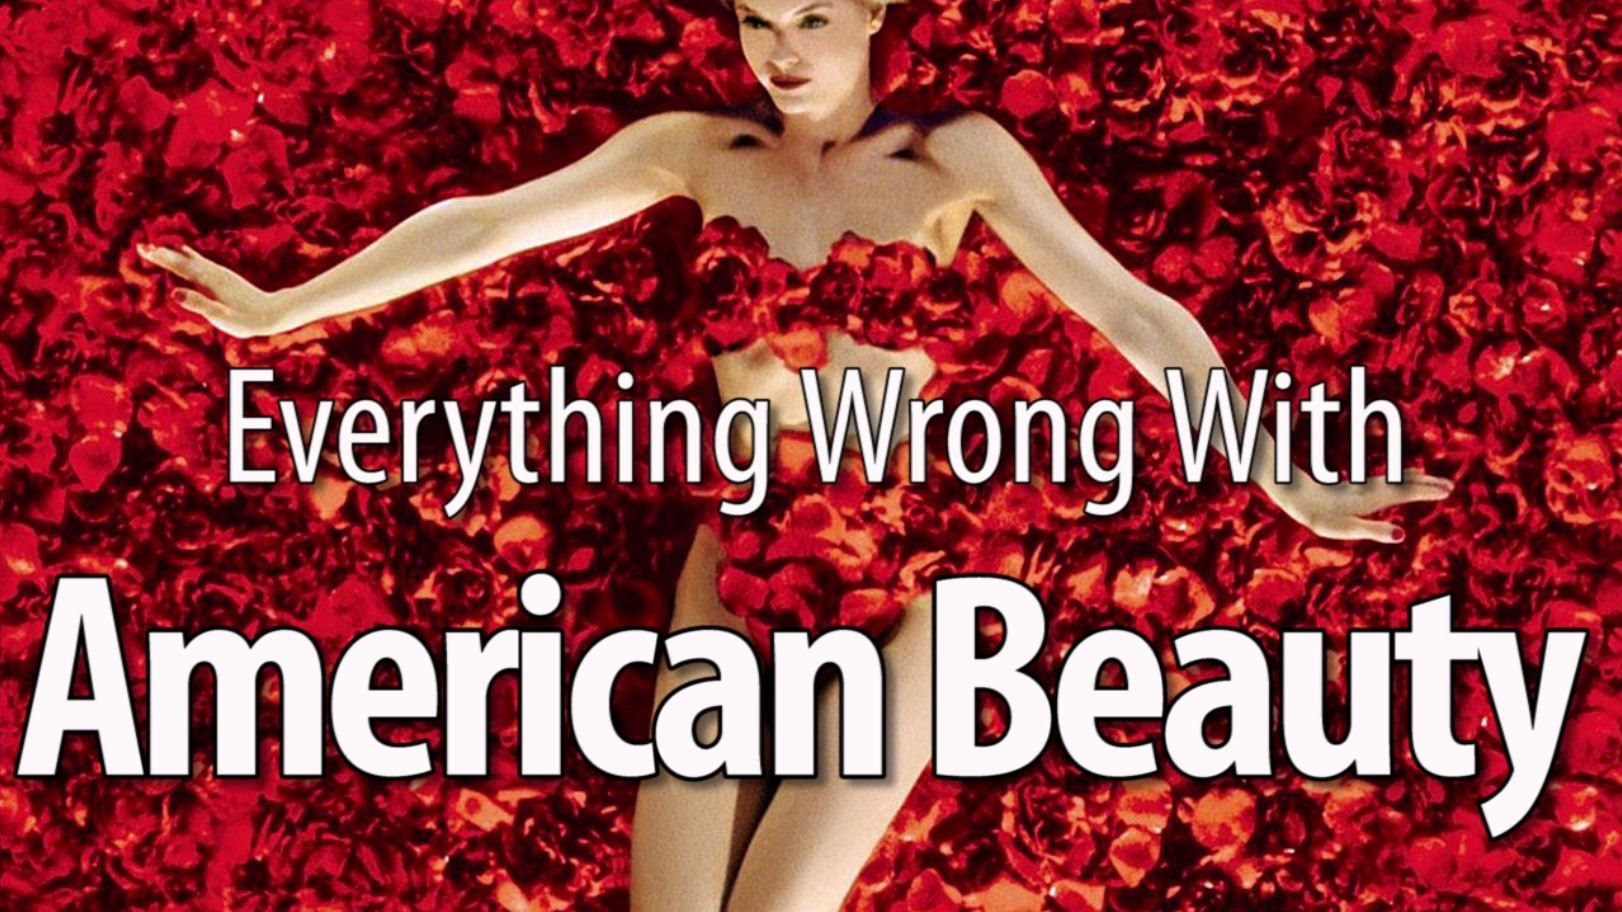 american beauty review Don't be deceived by appearances american beauty may look like yet another middle american family drama, with tears, laughter, rifts and reconciliations, but it isn't.